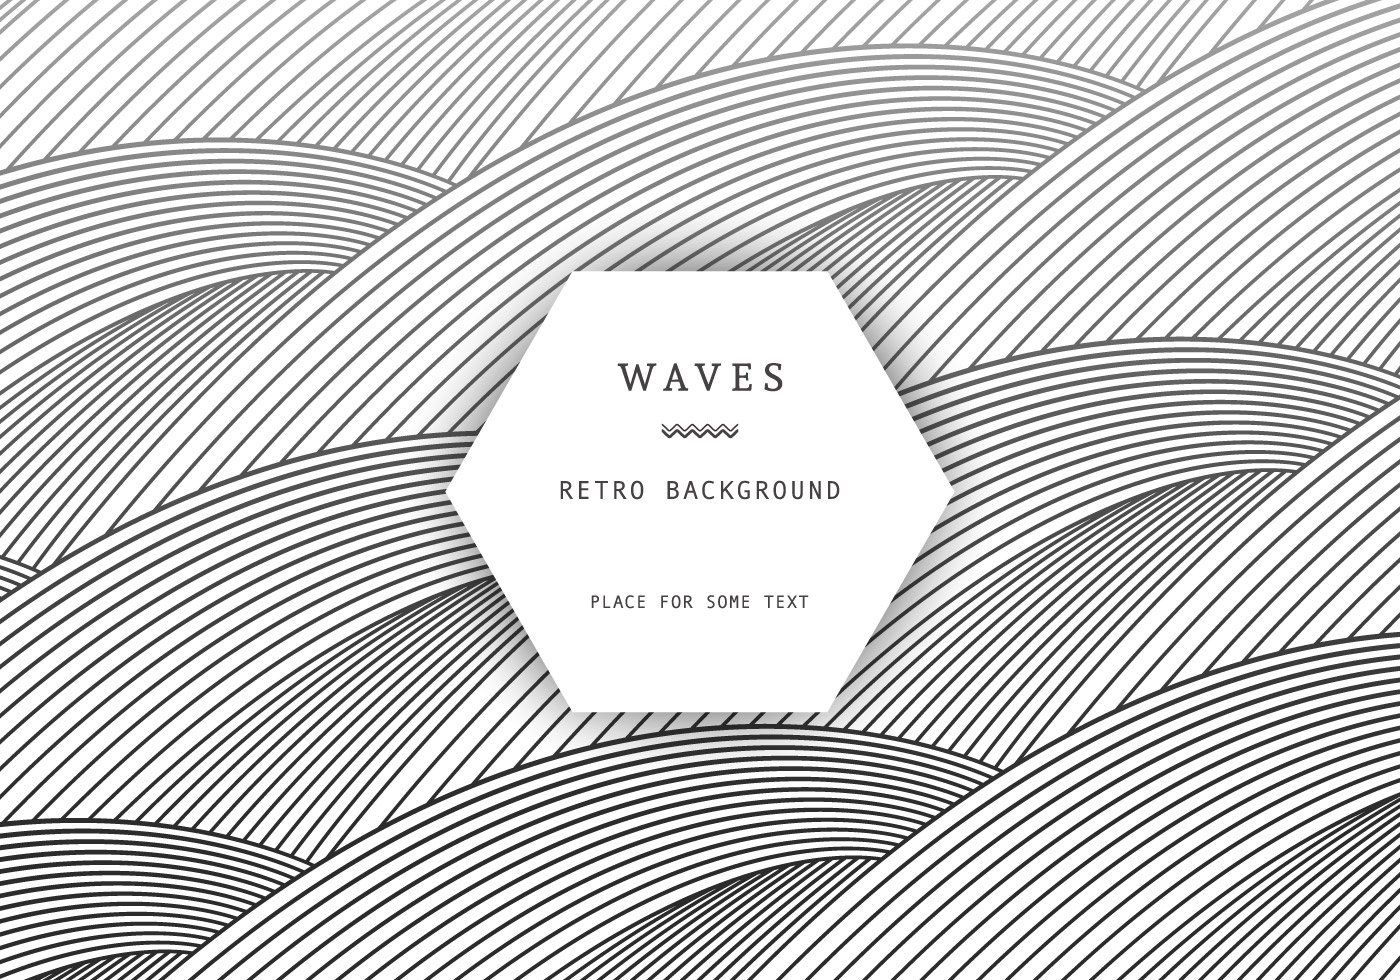 Retro Waves Background Vector Graphic — psychedelic, abstract, gradient,  texture, outline,